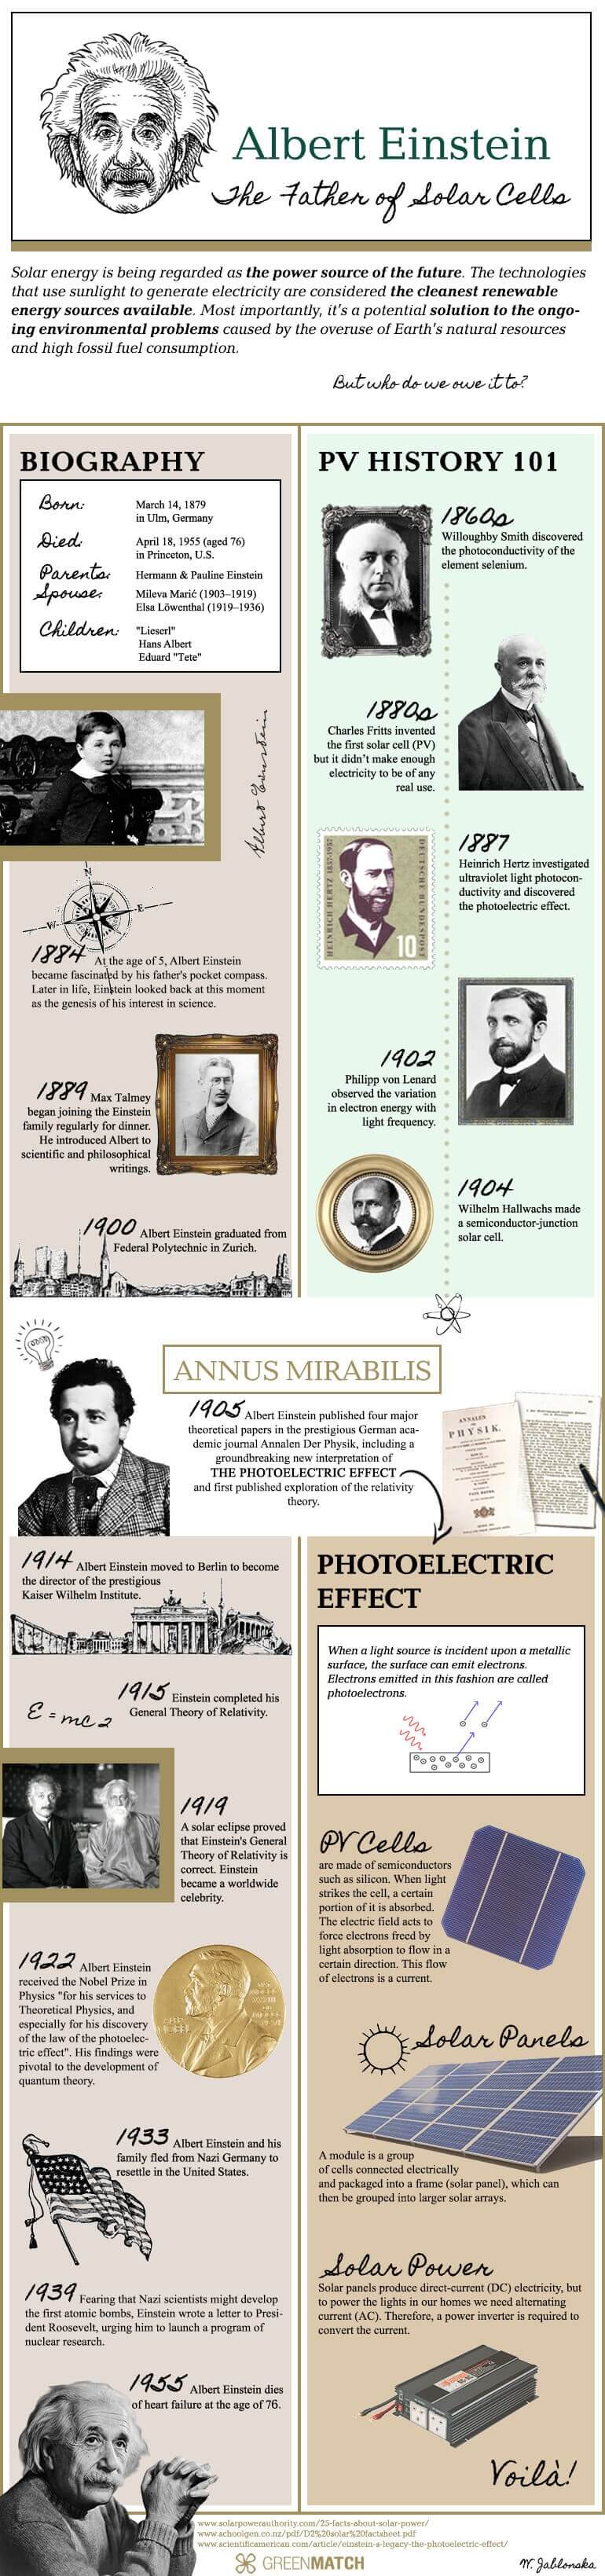 Infographic about Albert Einstein, The Father of Solar Cells